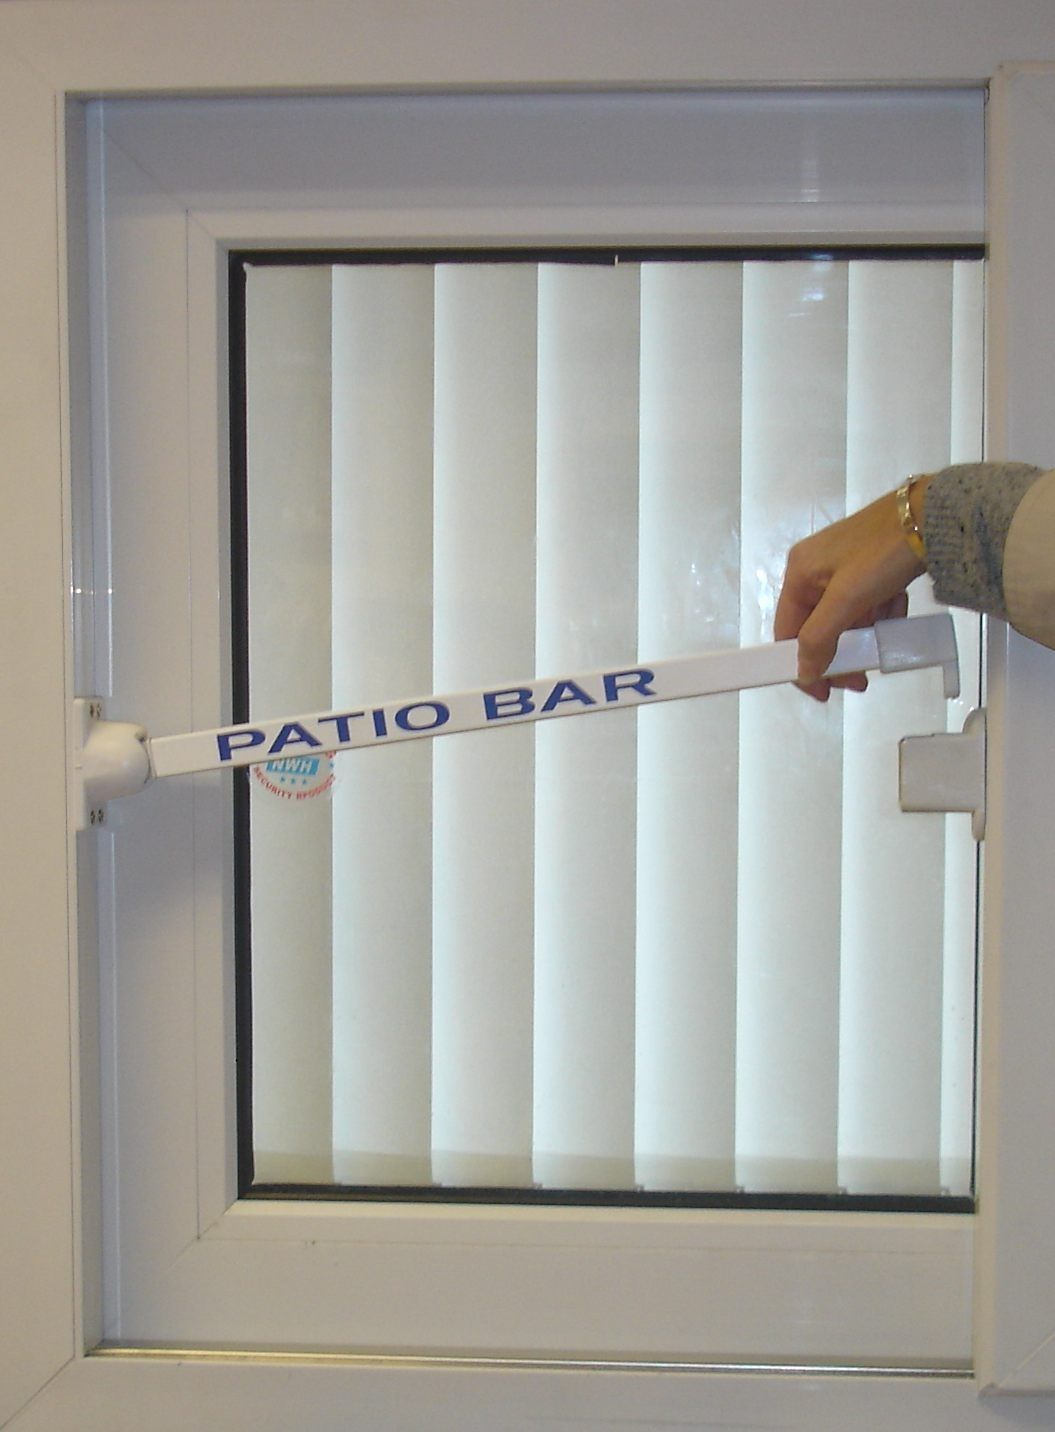 Security Bars For Patio Sliding Doors Sliding Glass Doors Patio Best Sliding Glass Doors Sliding Patio Doors